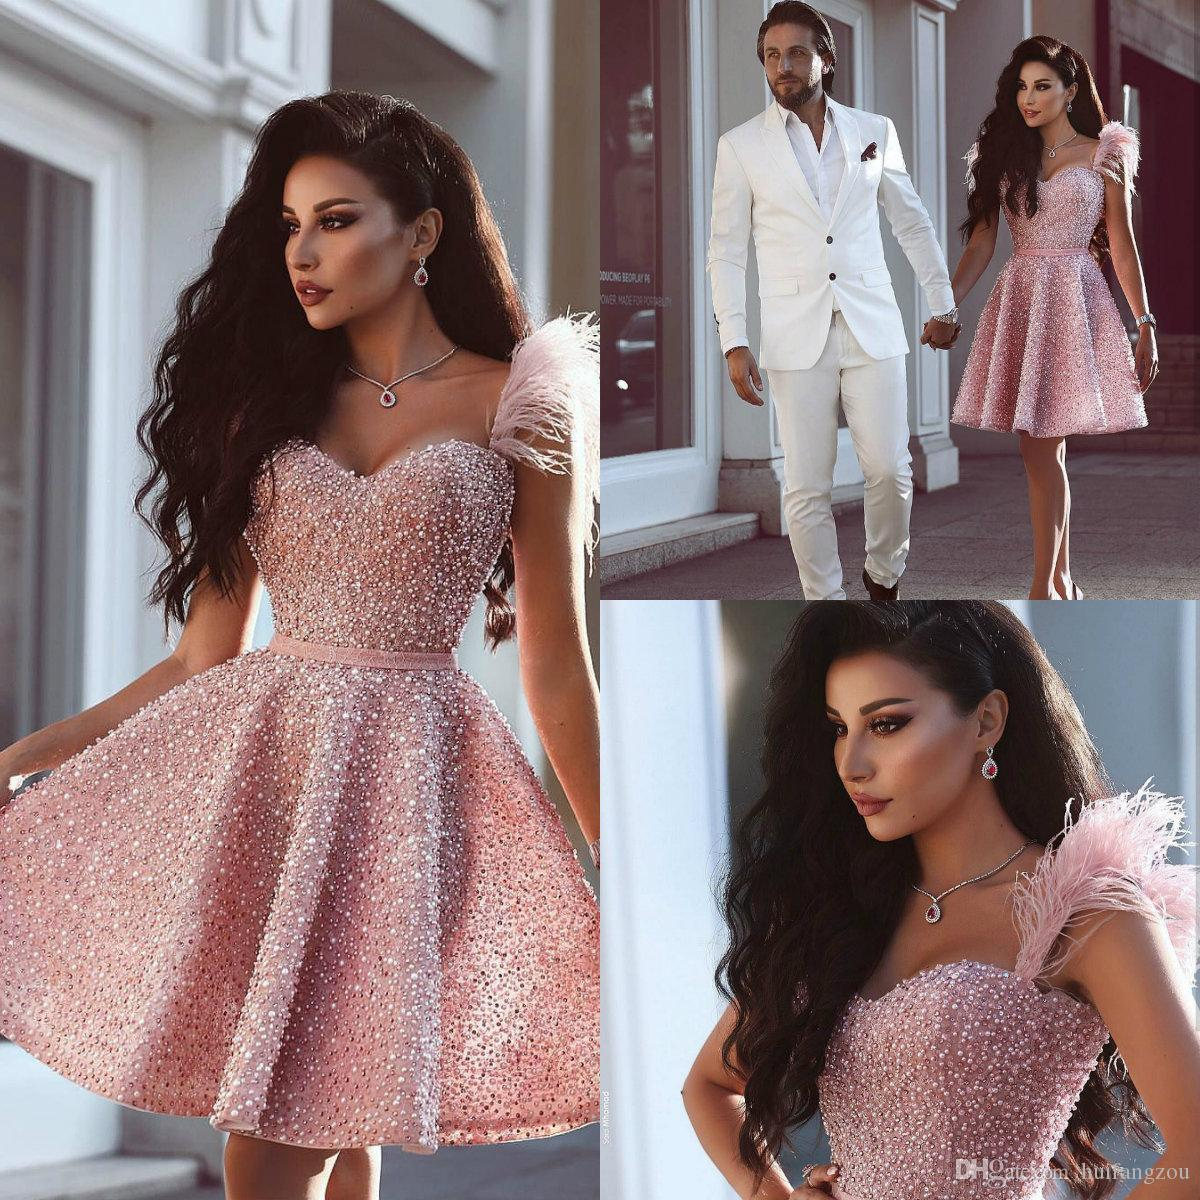 Luxe Personnalisé Robe De Bal Longueur Au Genou Major Perles Paillettes Rose Plumes Conception Homecoming Party Robes Robes De Soirée